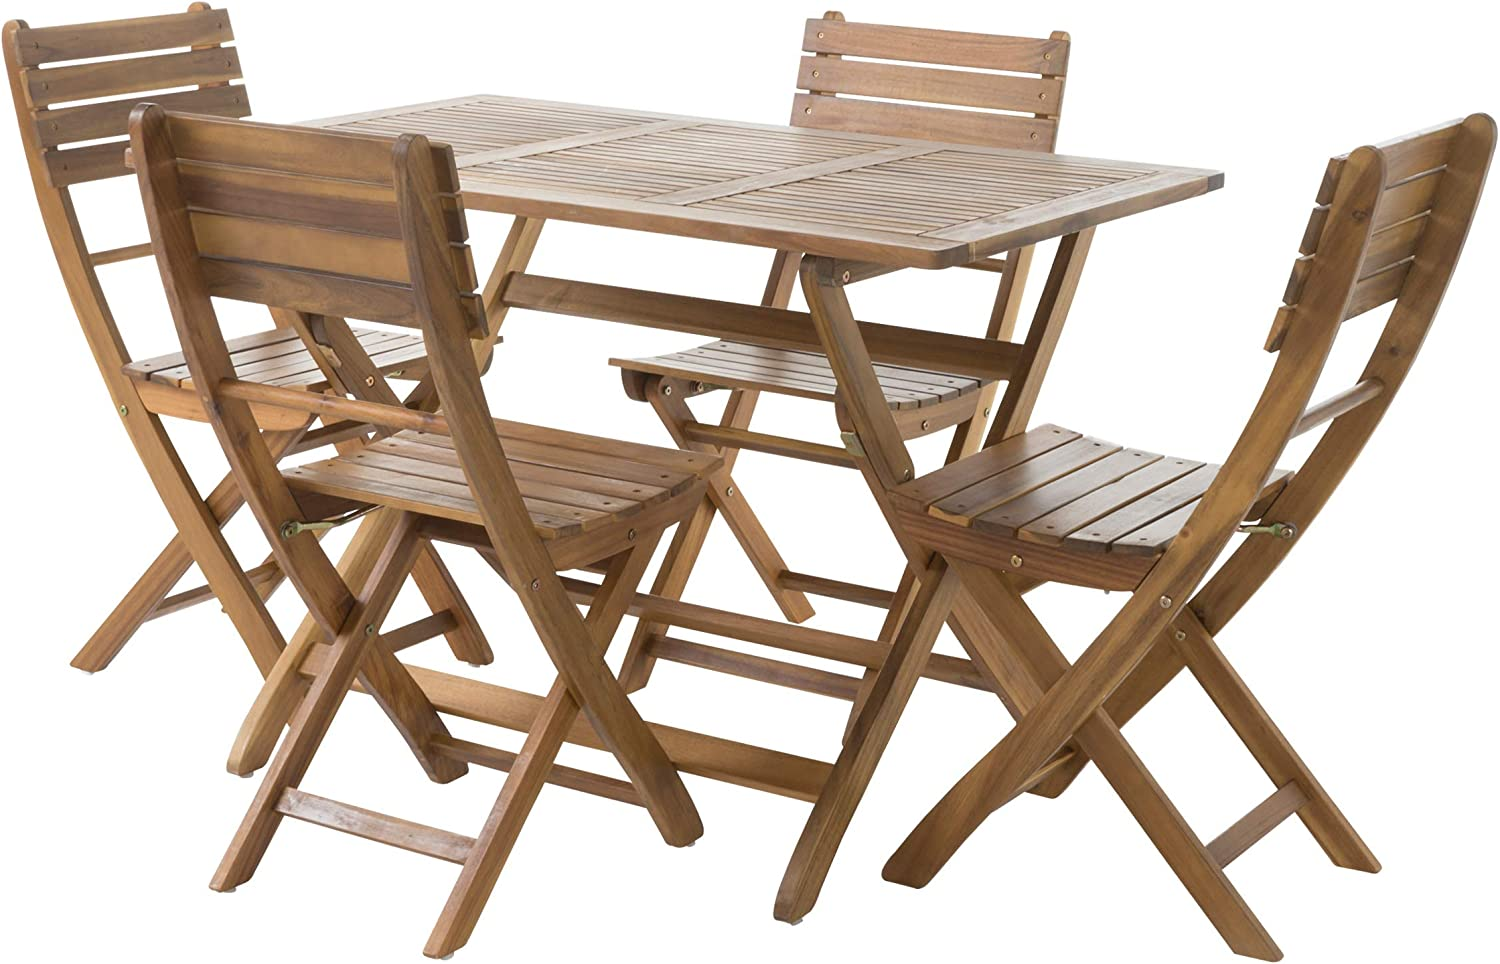 GDF Studio Vicaro | 5 Piece Wood Outdoor Folding Dining Set | Perfect for Patio | with Natural Finish